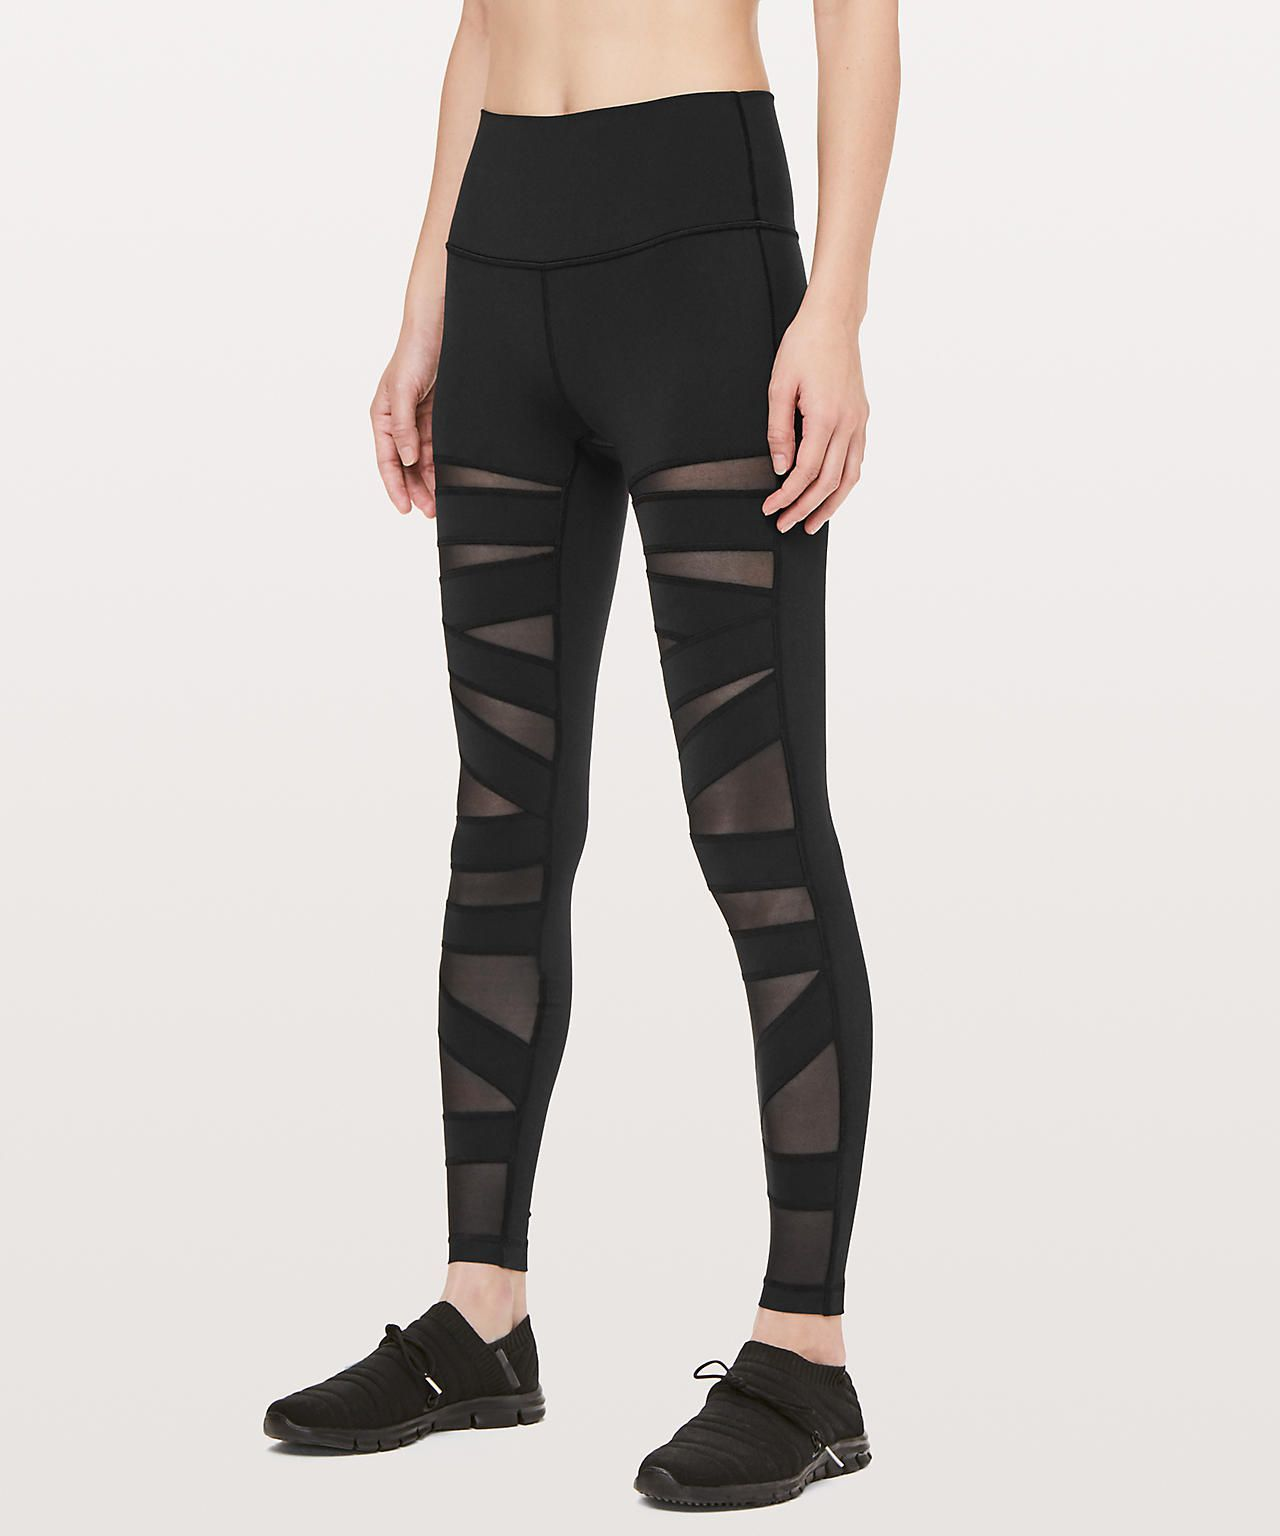 046df9eaf33c87 18 Best Mesh Leggings to Workout In 2019 - Stylish Mesh Tights